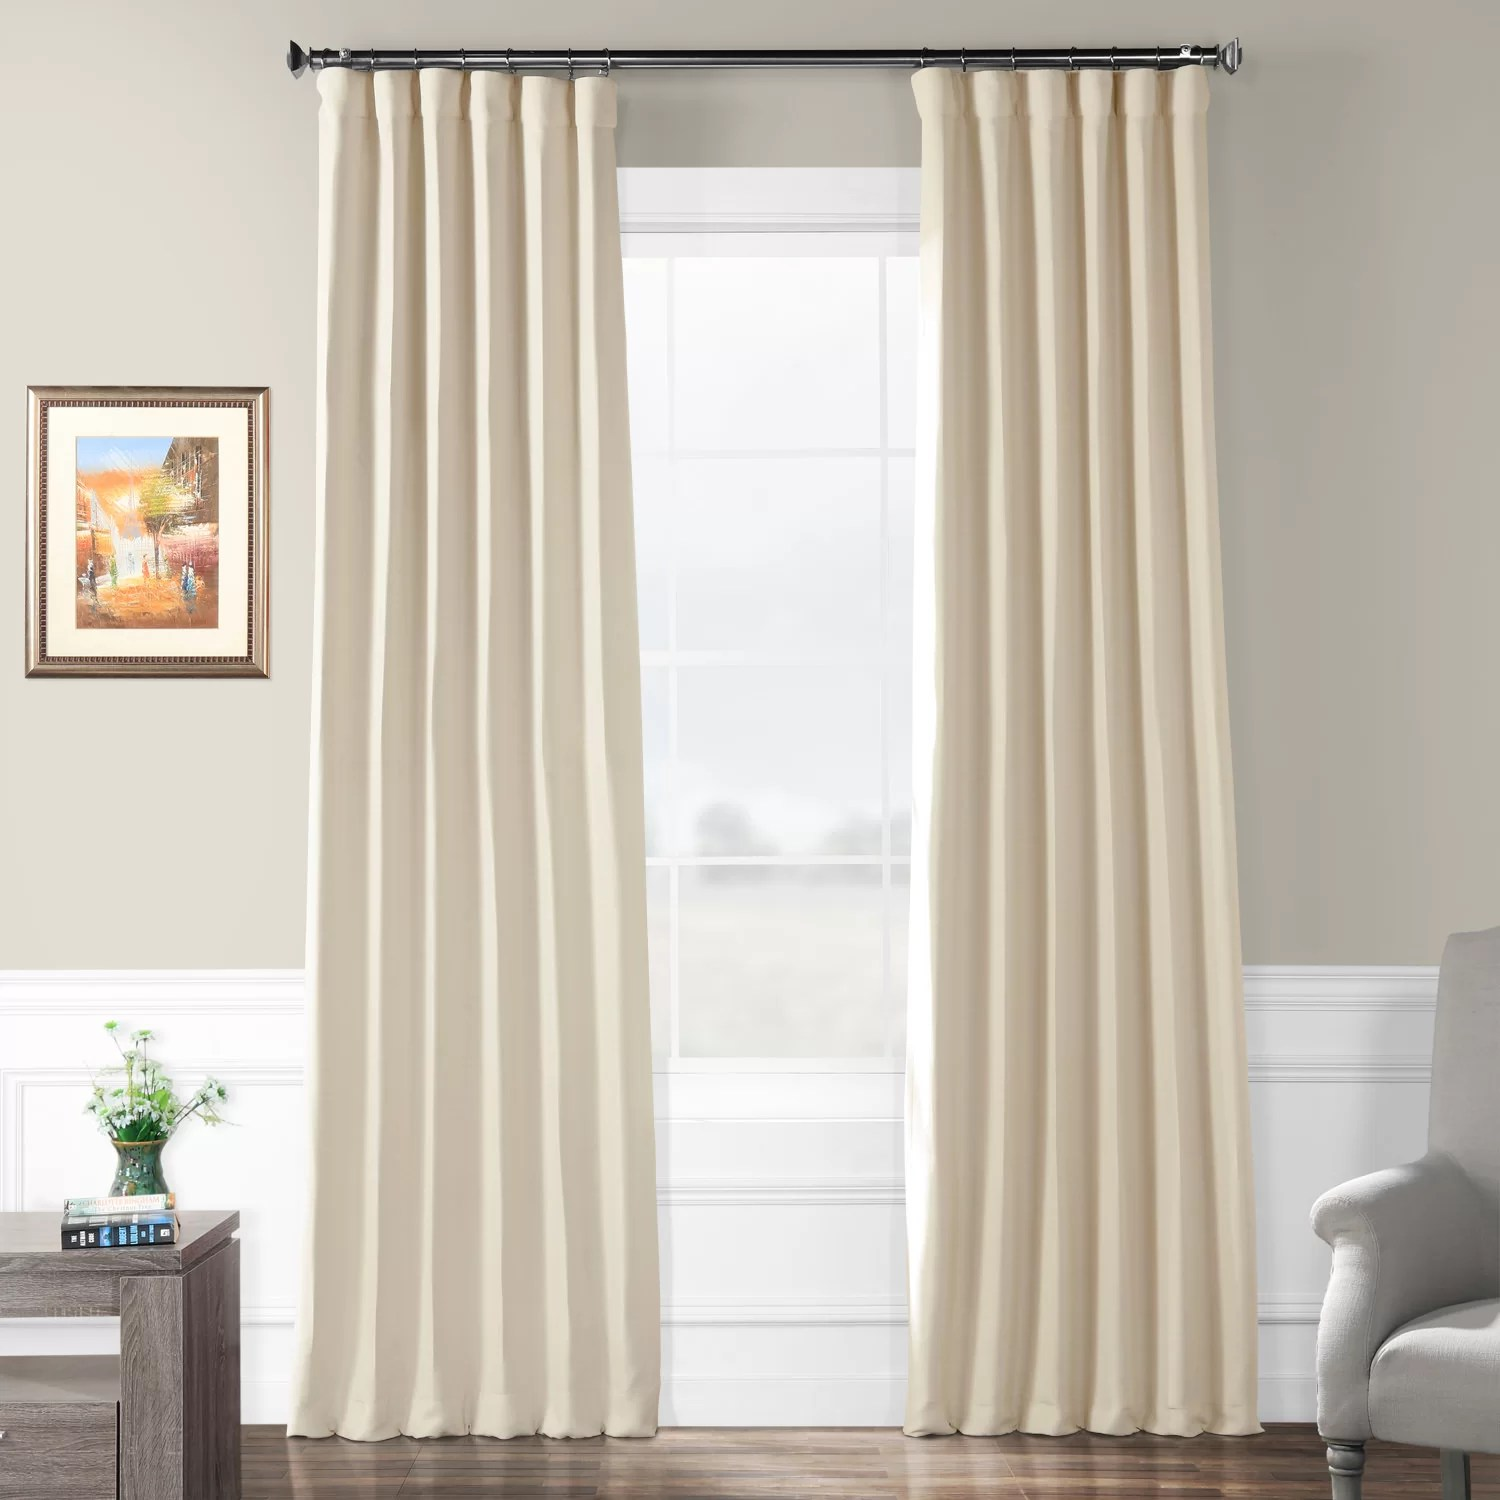 36 Inch Room Darkening Curtains Freemansburg Room Darkening Thermal Rod Pocket Single Curtain Panel